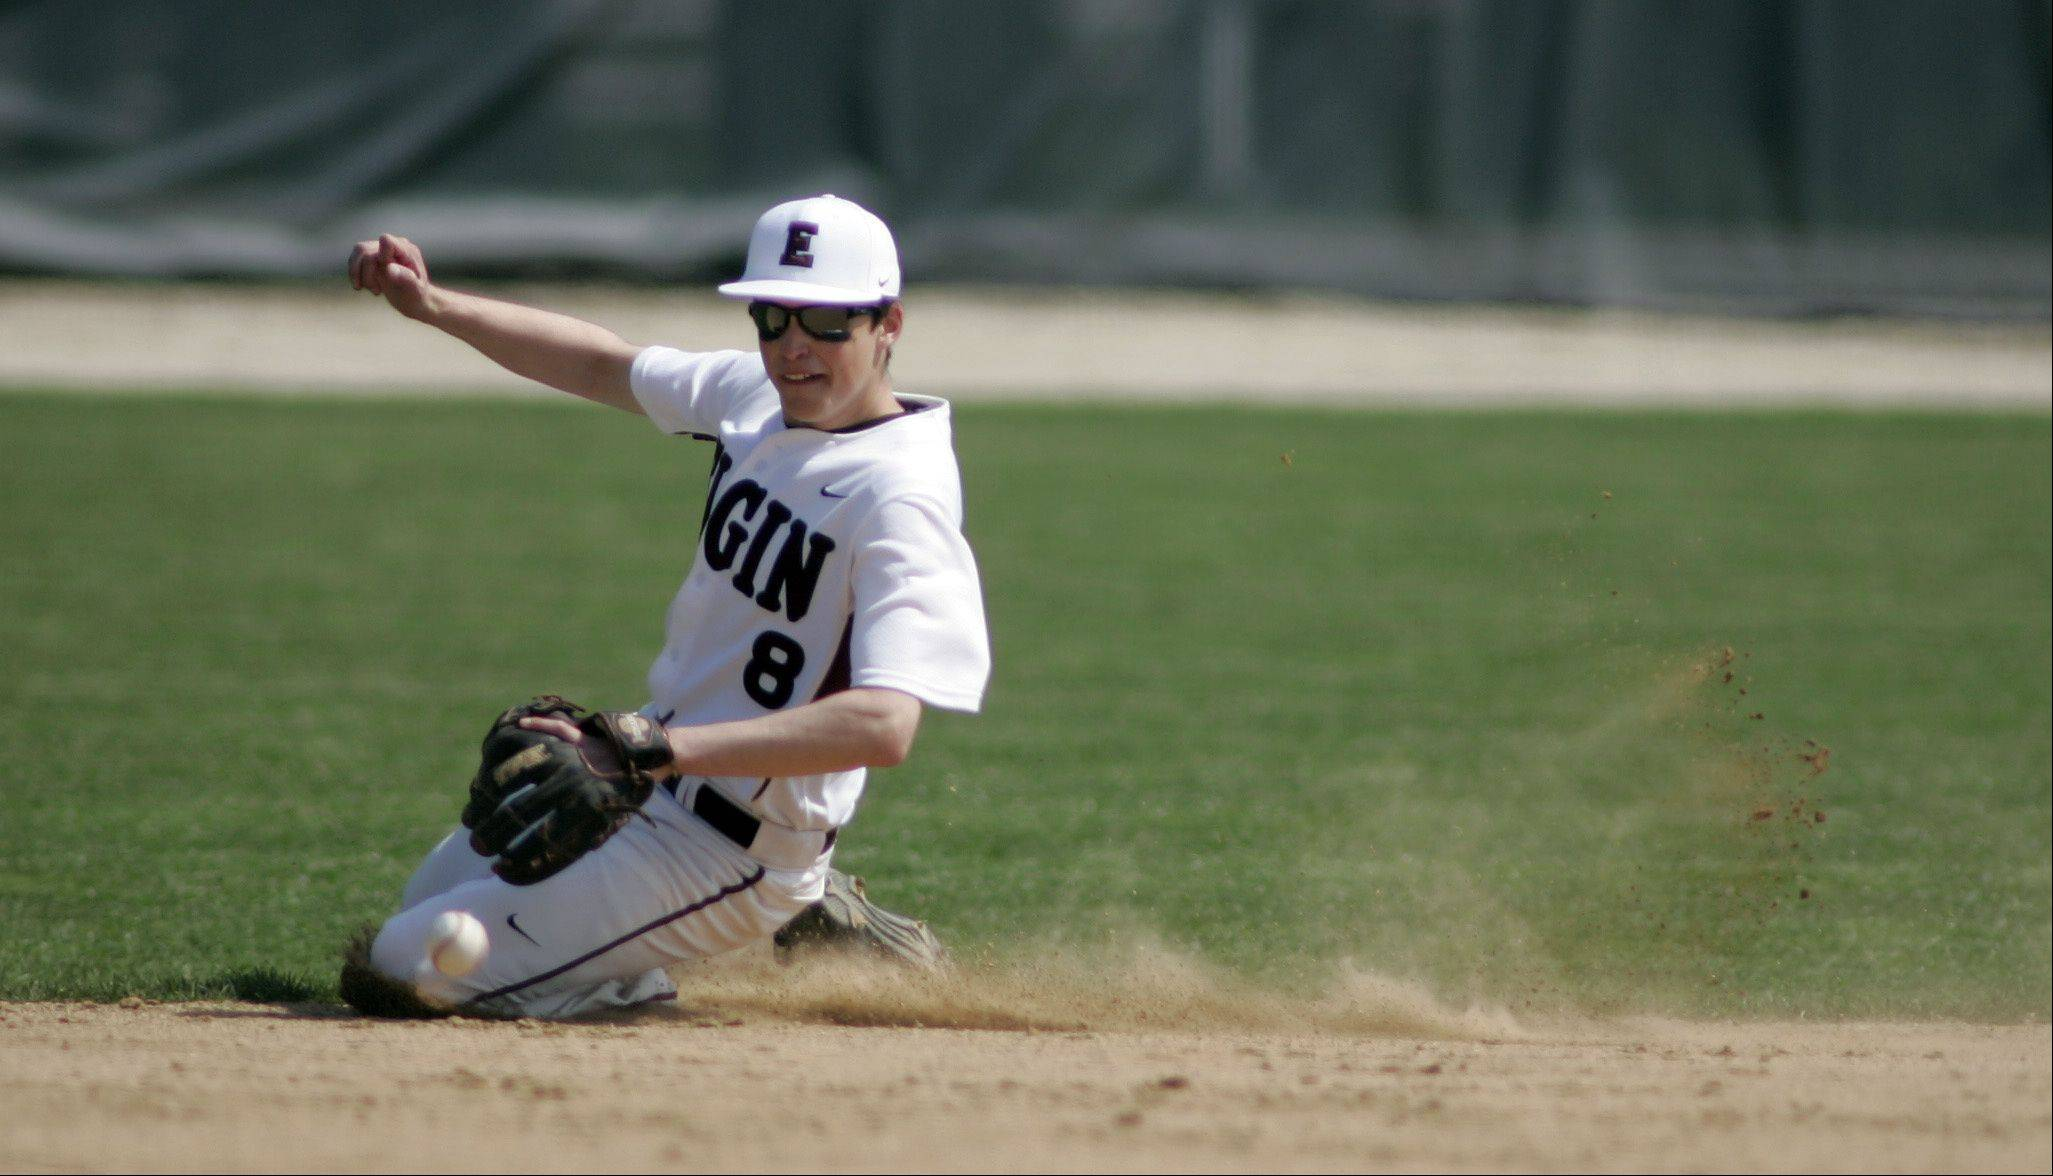 Elgin's Alex Buttell reels in a ground ball Saturday at Trout Park.